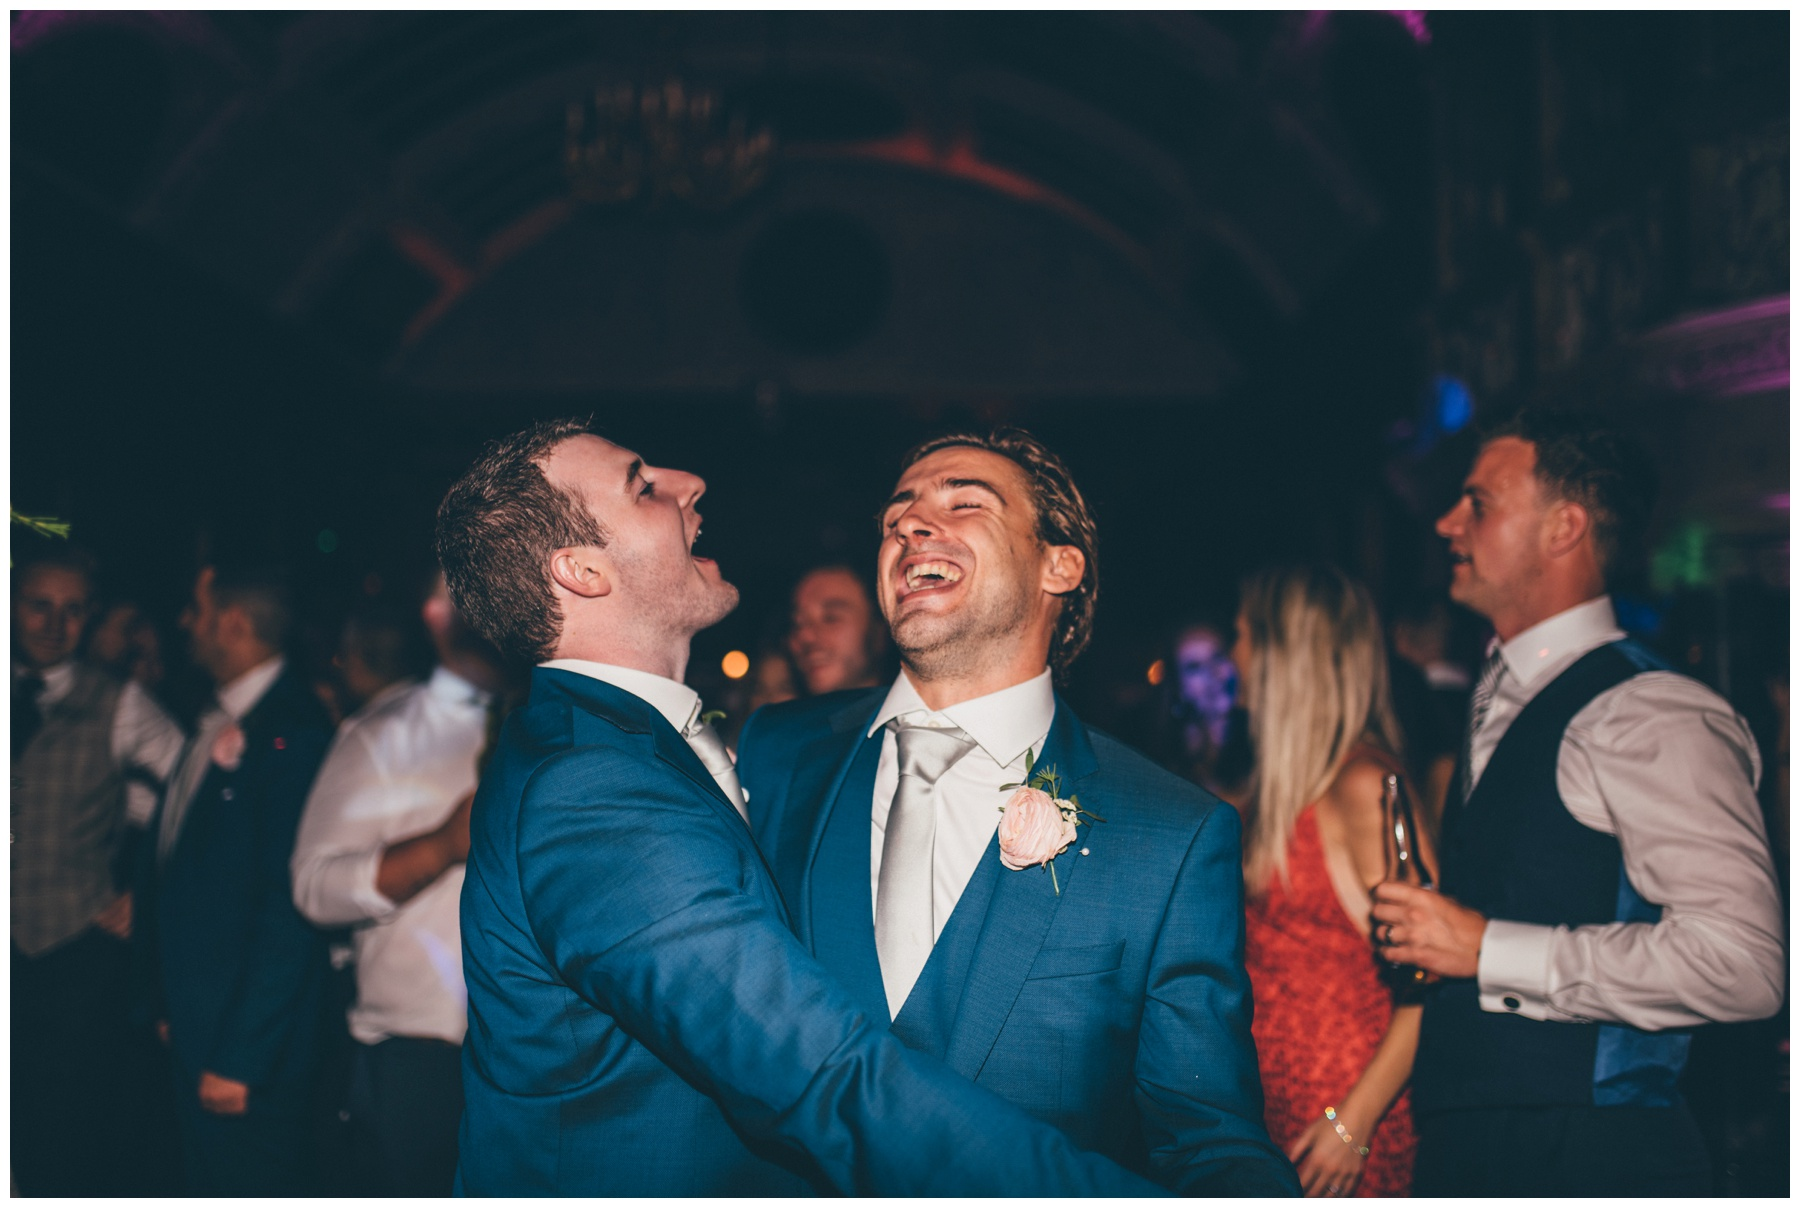 The groom and his Best Man dance and sing and have fun together at Thornton Manor wedding in Cheshire.